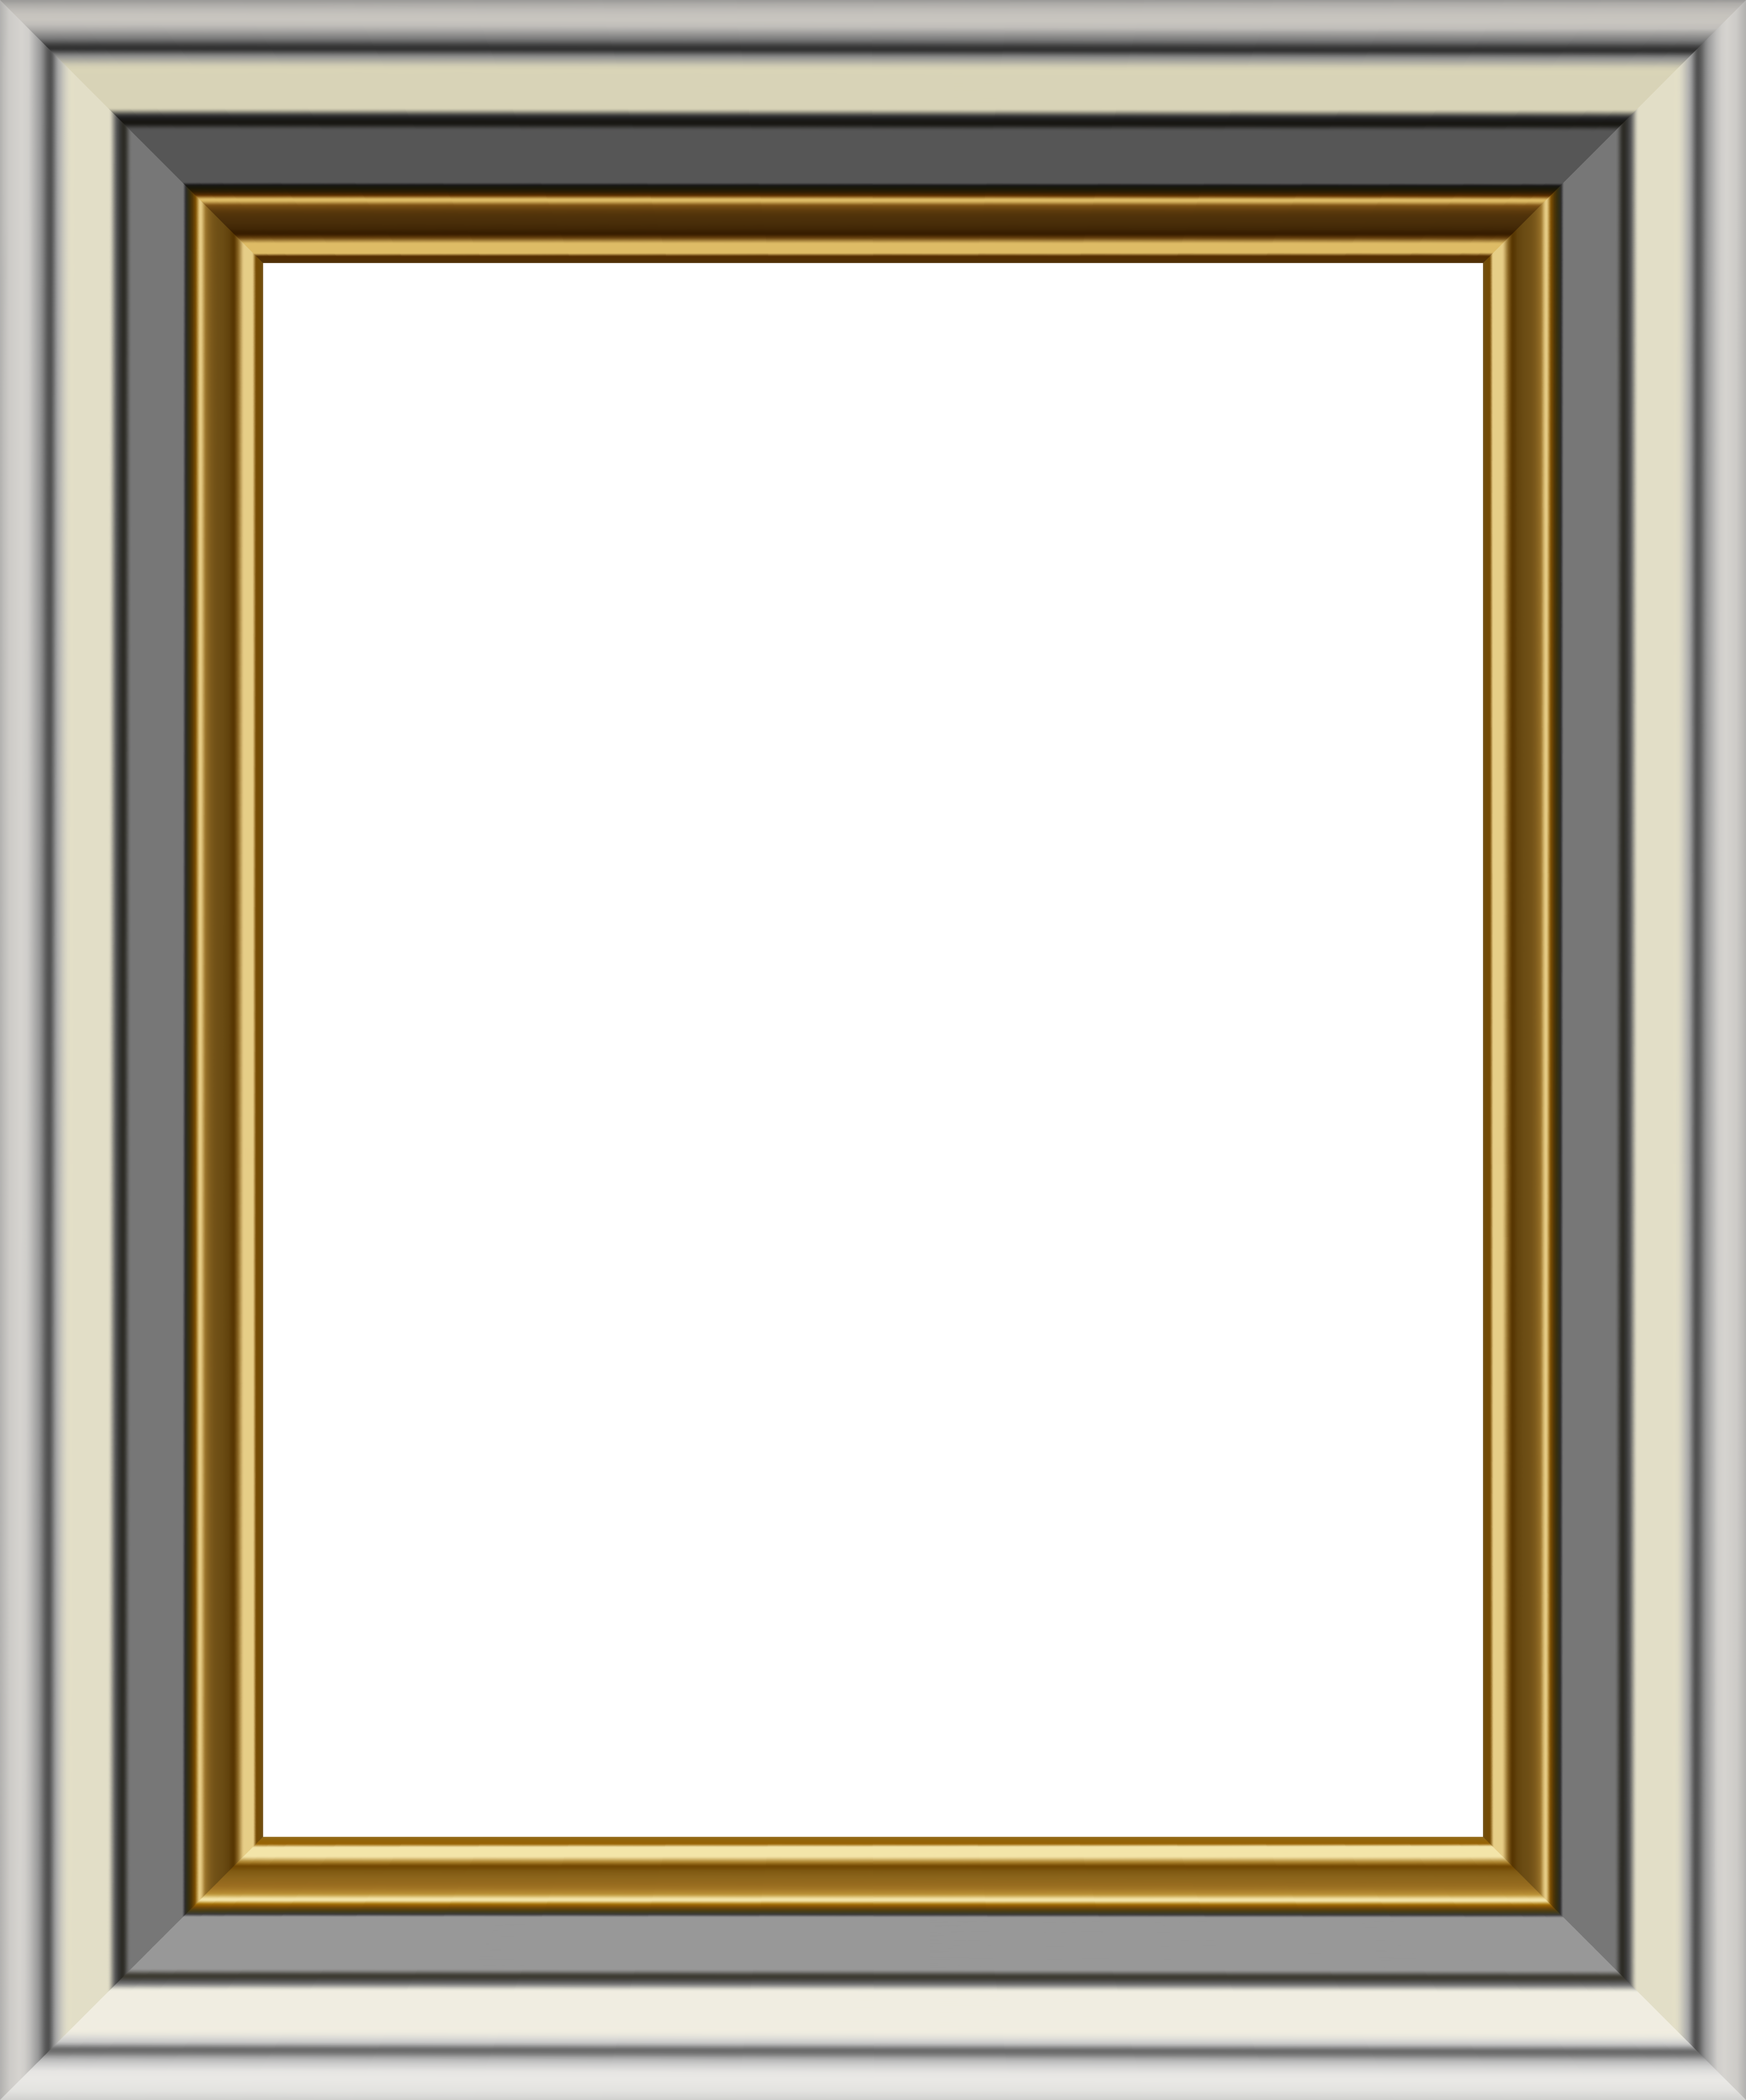 Silver picture frame png. Gold and transparent image